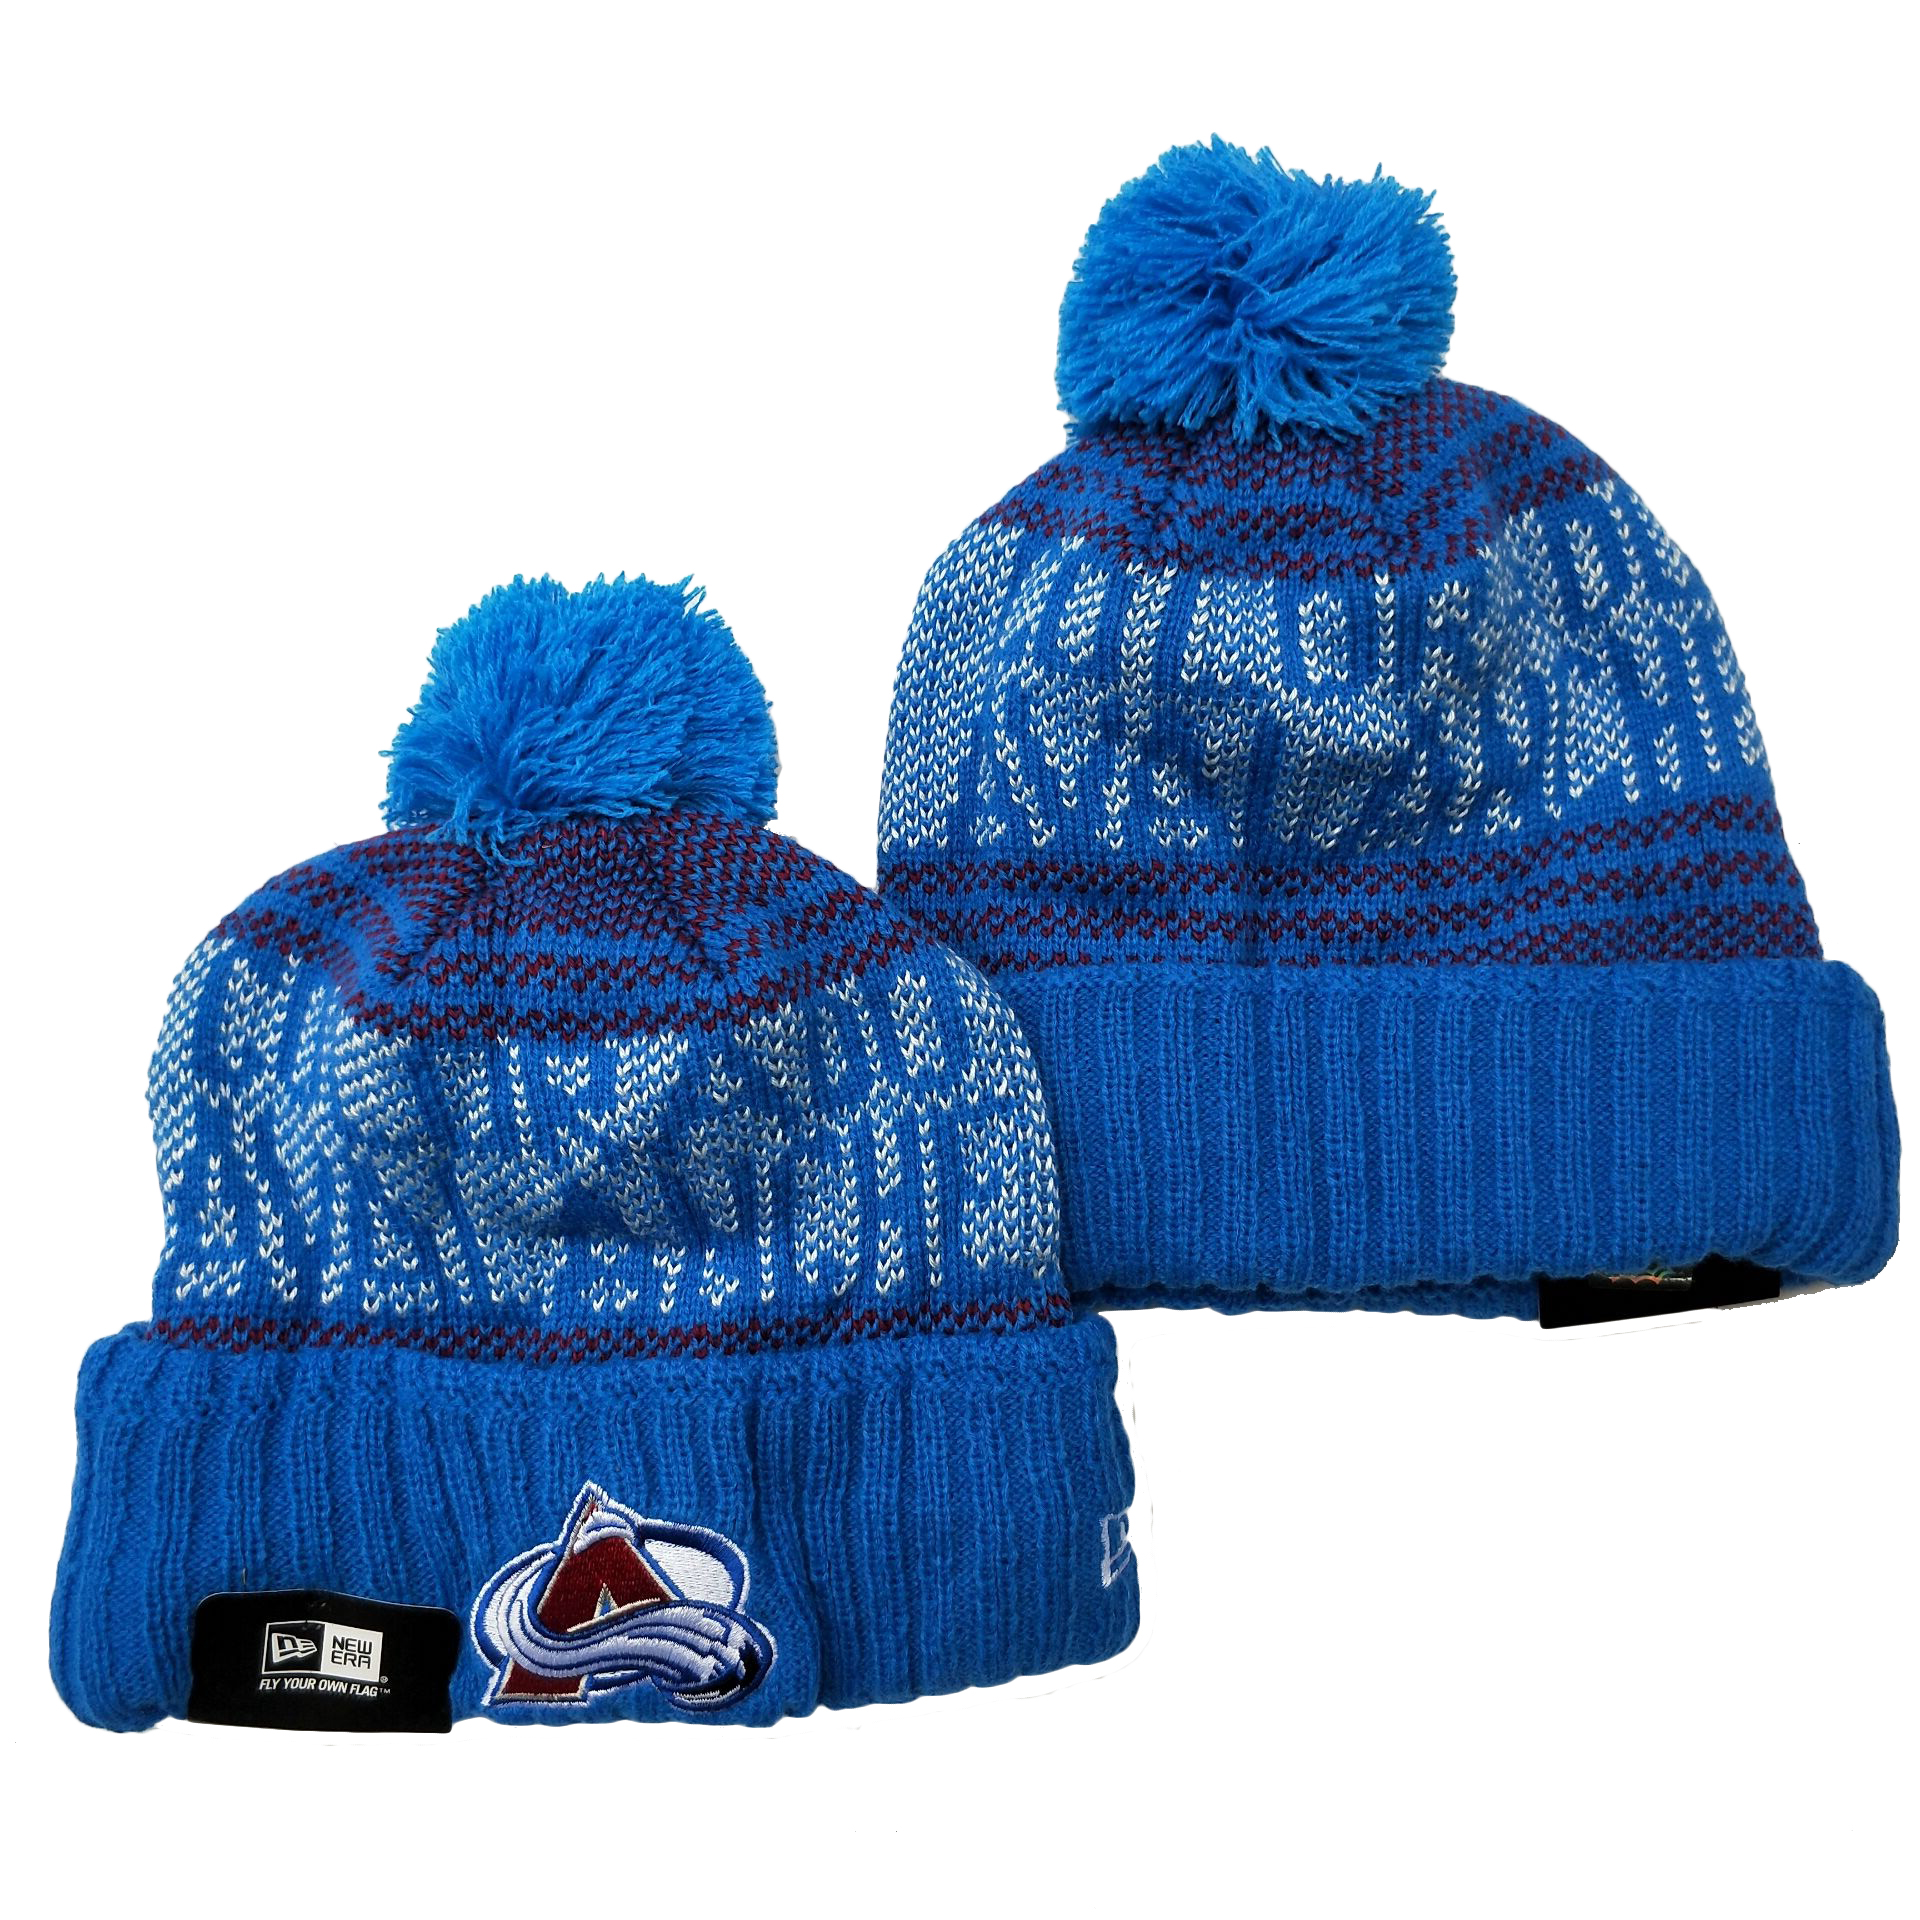 Avalanche Team Logo Blue Pom Cuffed Knit Hat YD